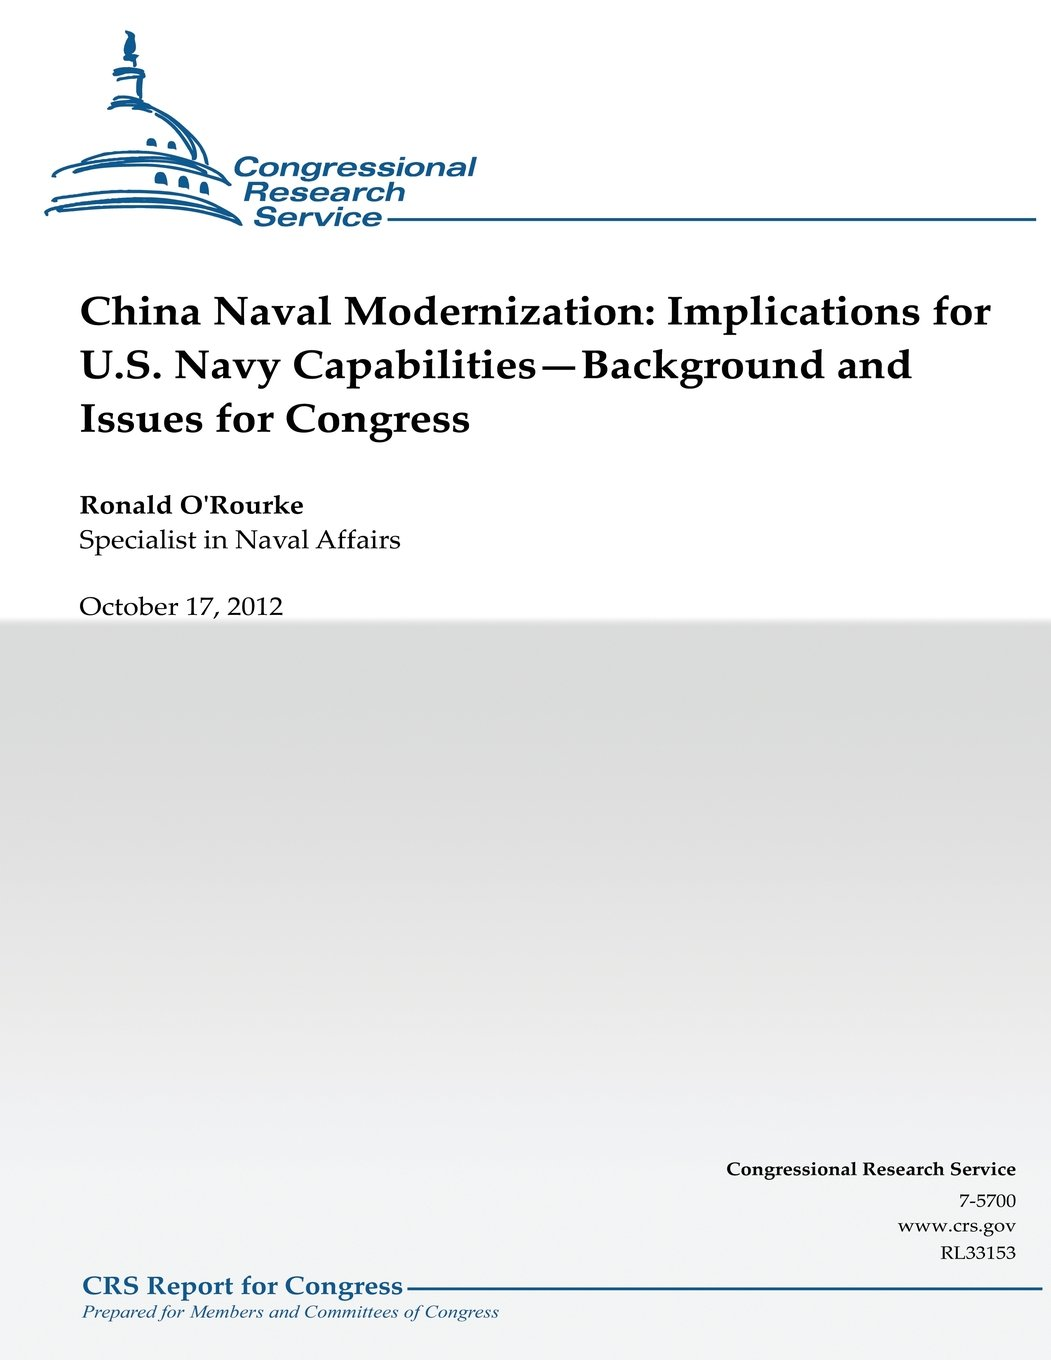 China Naval Modernization: Implications for U.S. Navy Capabilities--Background and Issues for Congress ebook